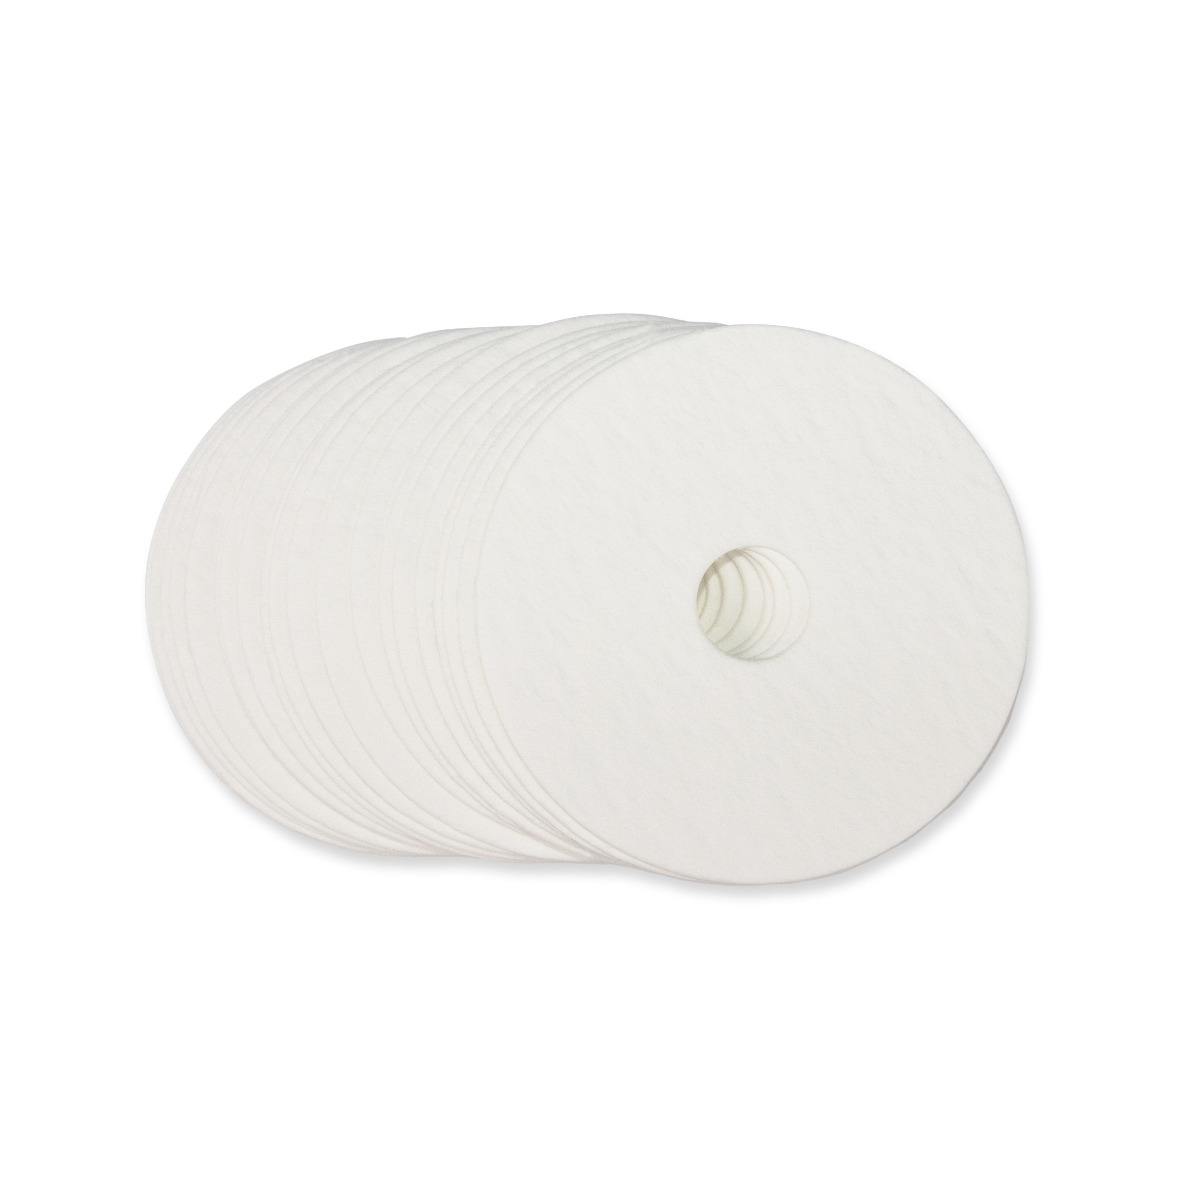 "Non-Asbestos Paper Bases - Round Base With Hole - 4"" (OD) x 0.75"" (ID)"